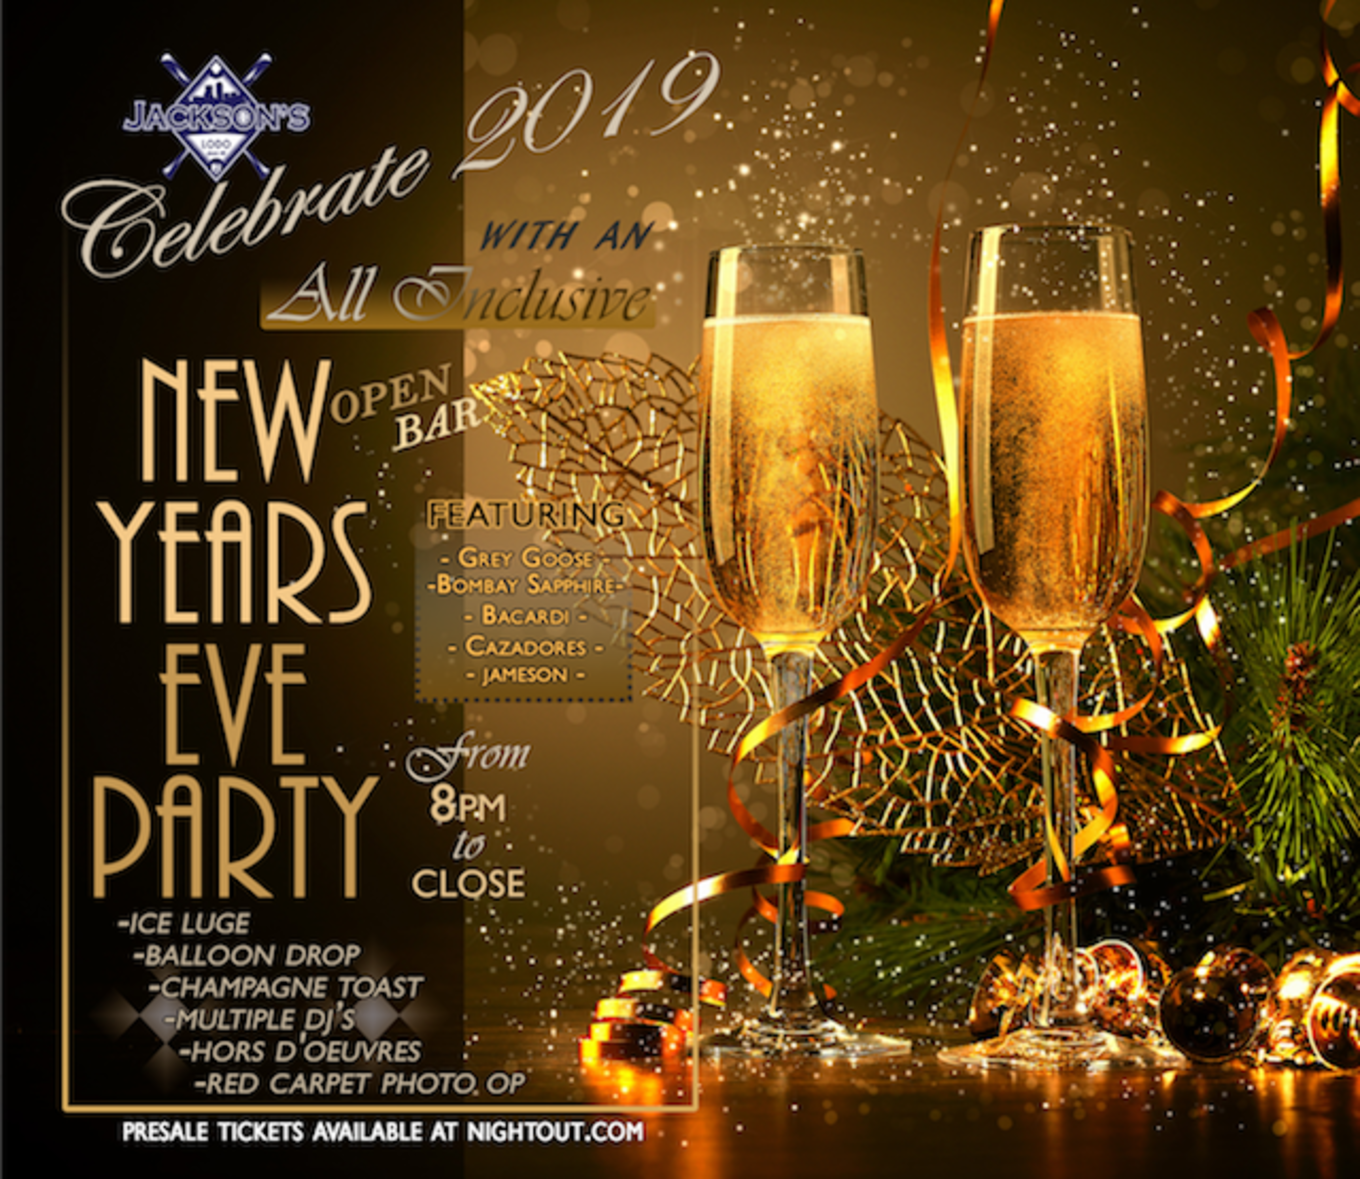 New Years 2019 At Jackson's